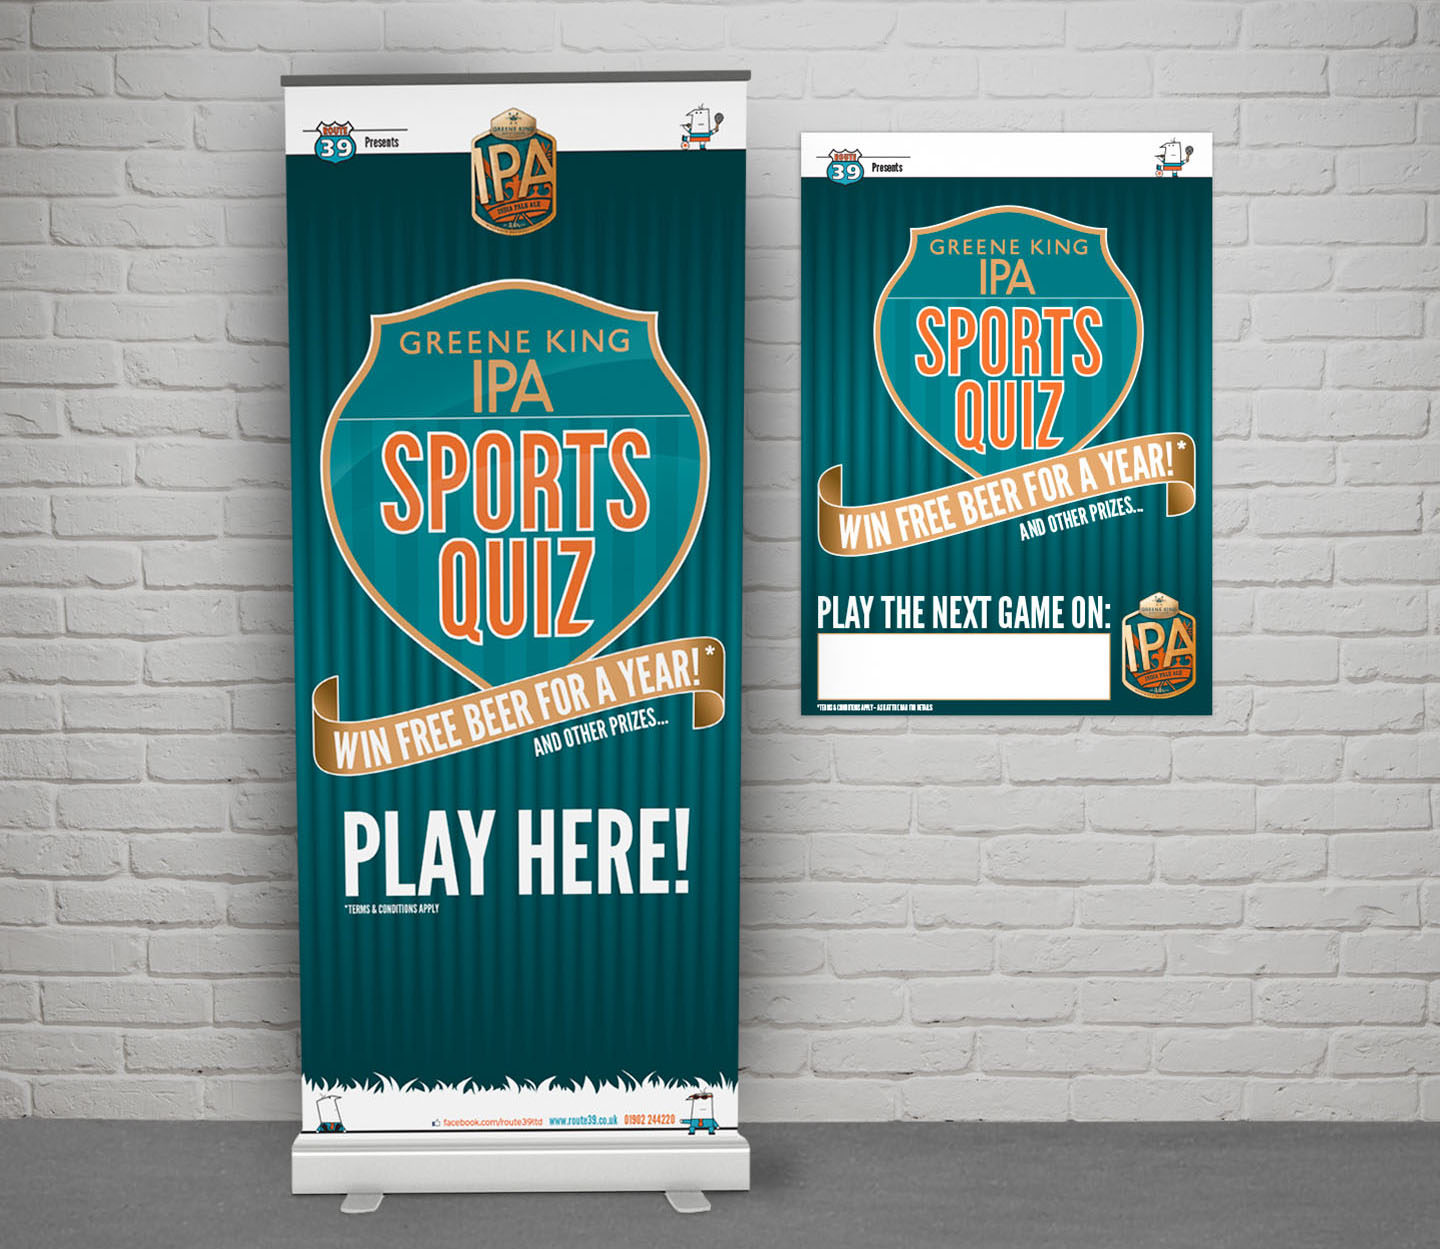 Marketing collateral – banner and poster